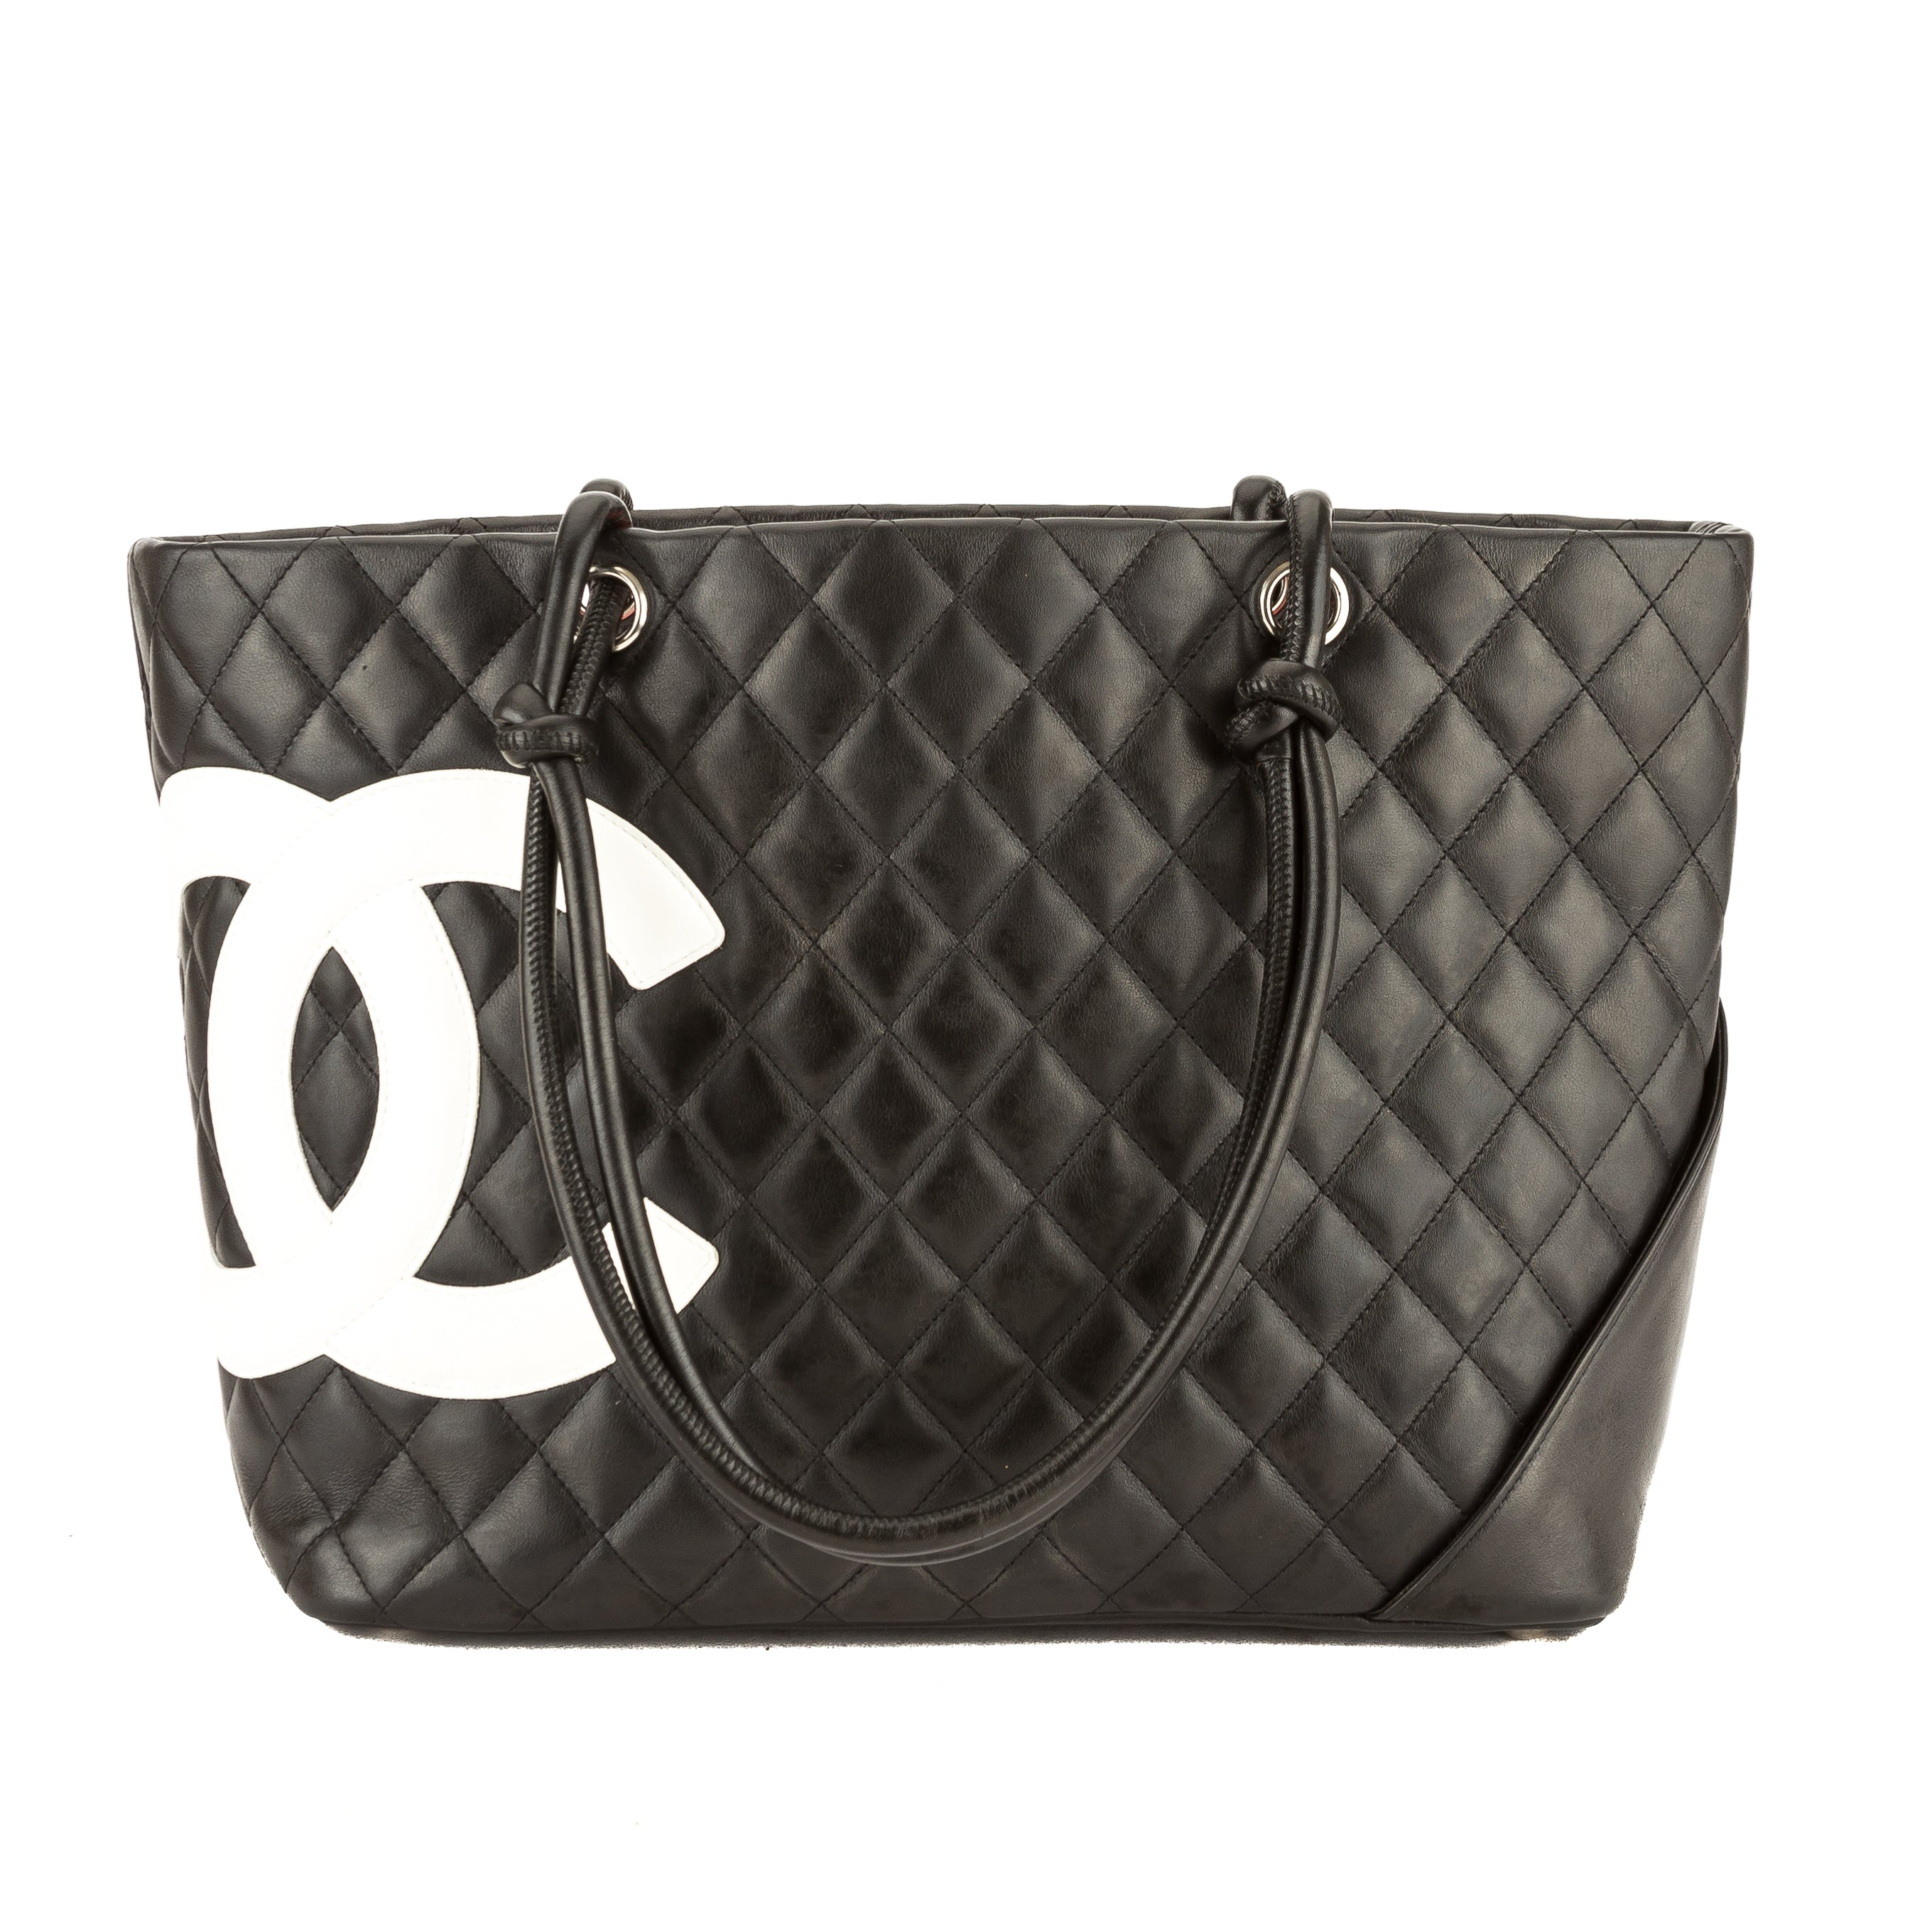 67457022effa23 Chanel Black Quilted Calfskin Leather Cambon Ligne Large Tote Pre Owned